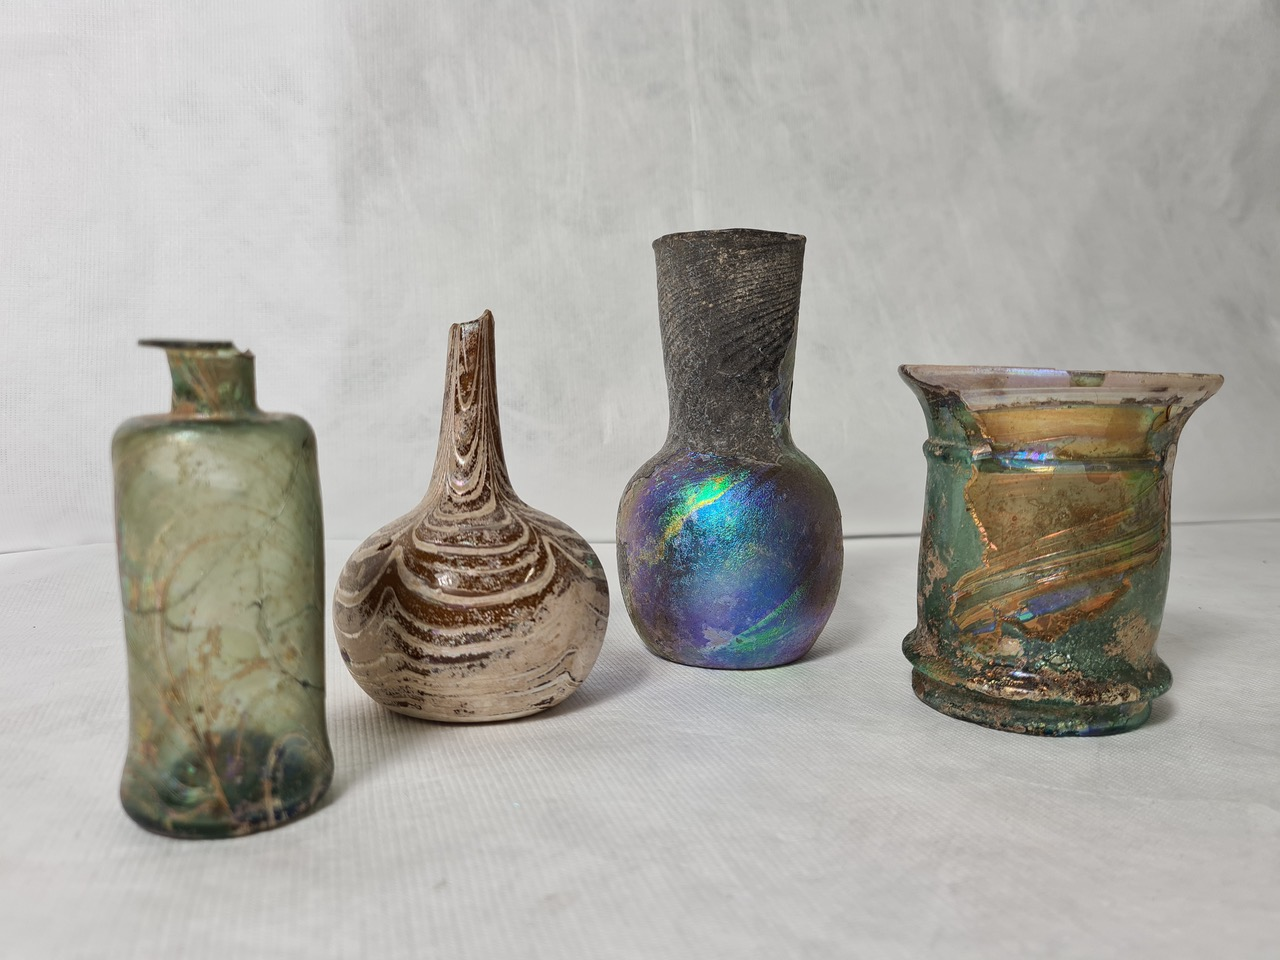 The Syrian Glass to go on display in Paisley - Art News Scotland